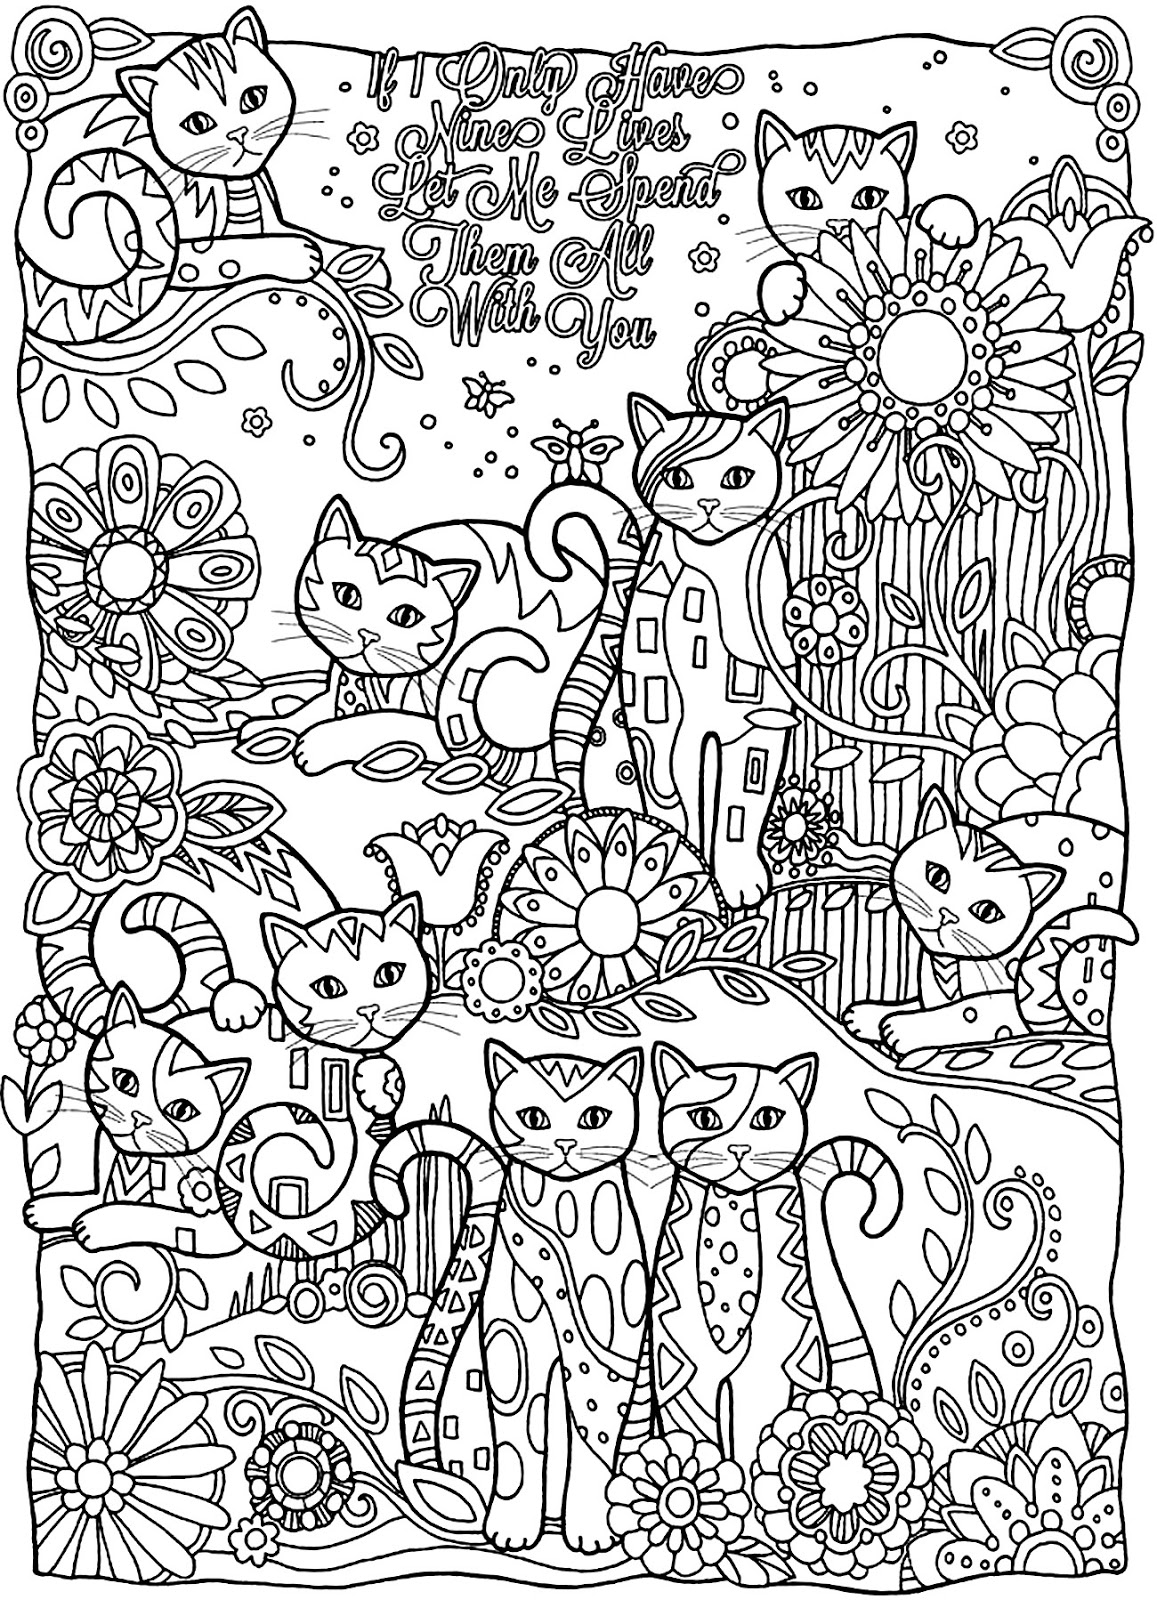 http://www.coloring-pages-adults.com/coloring-animals-insects ...